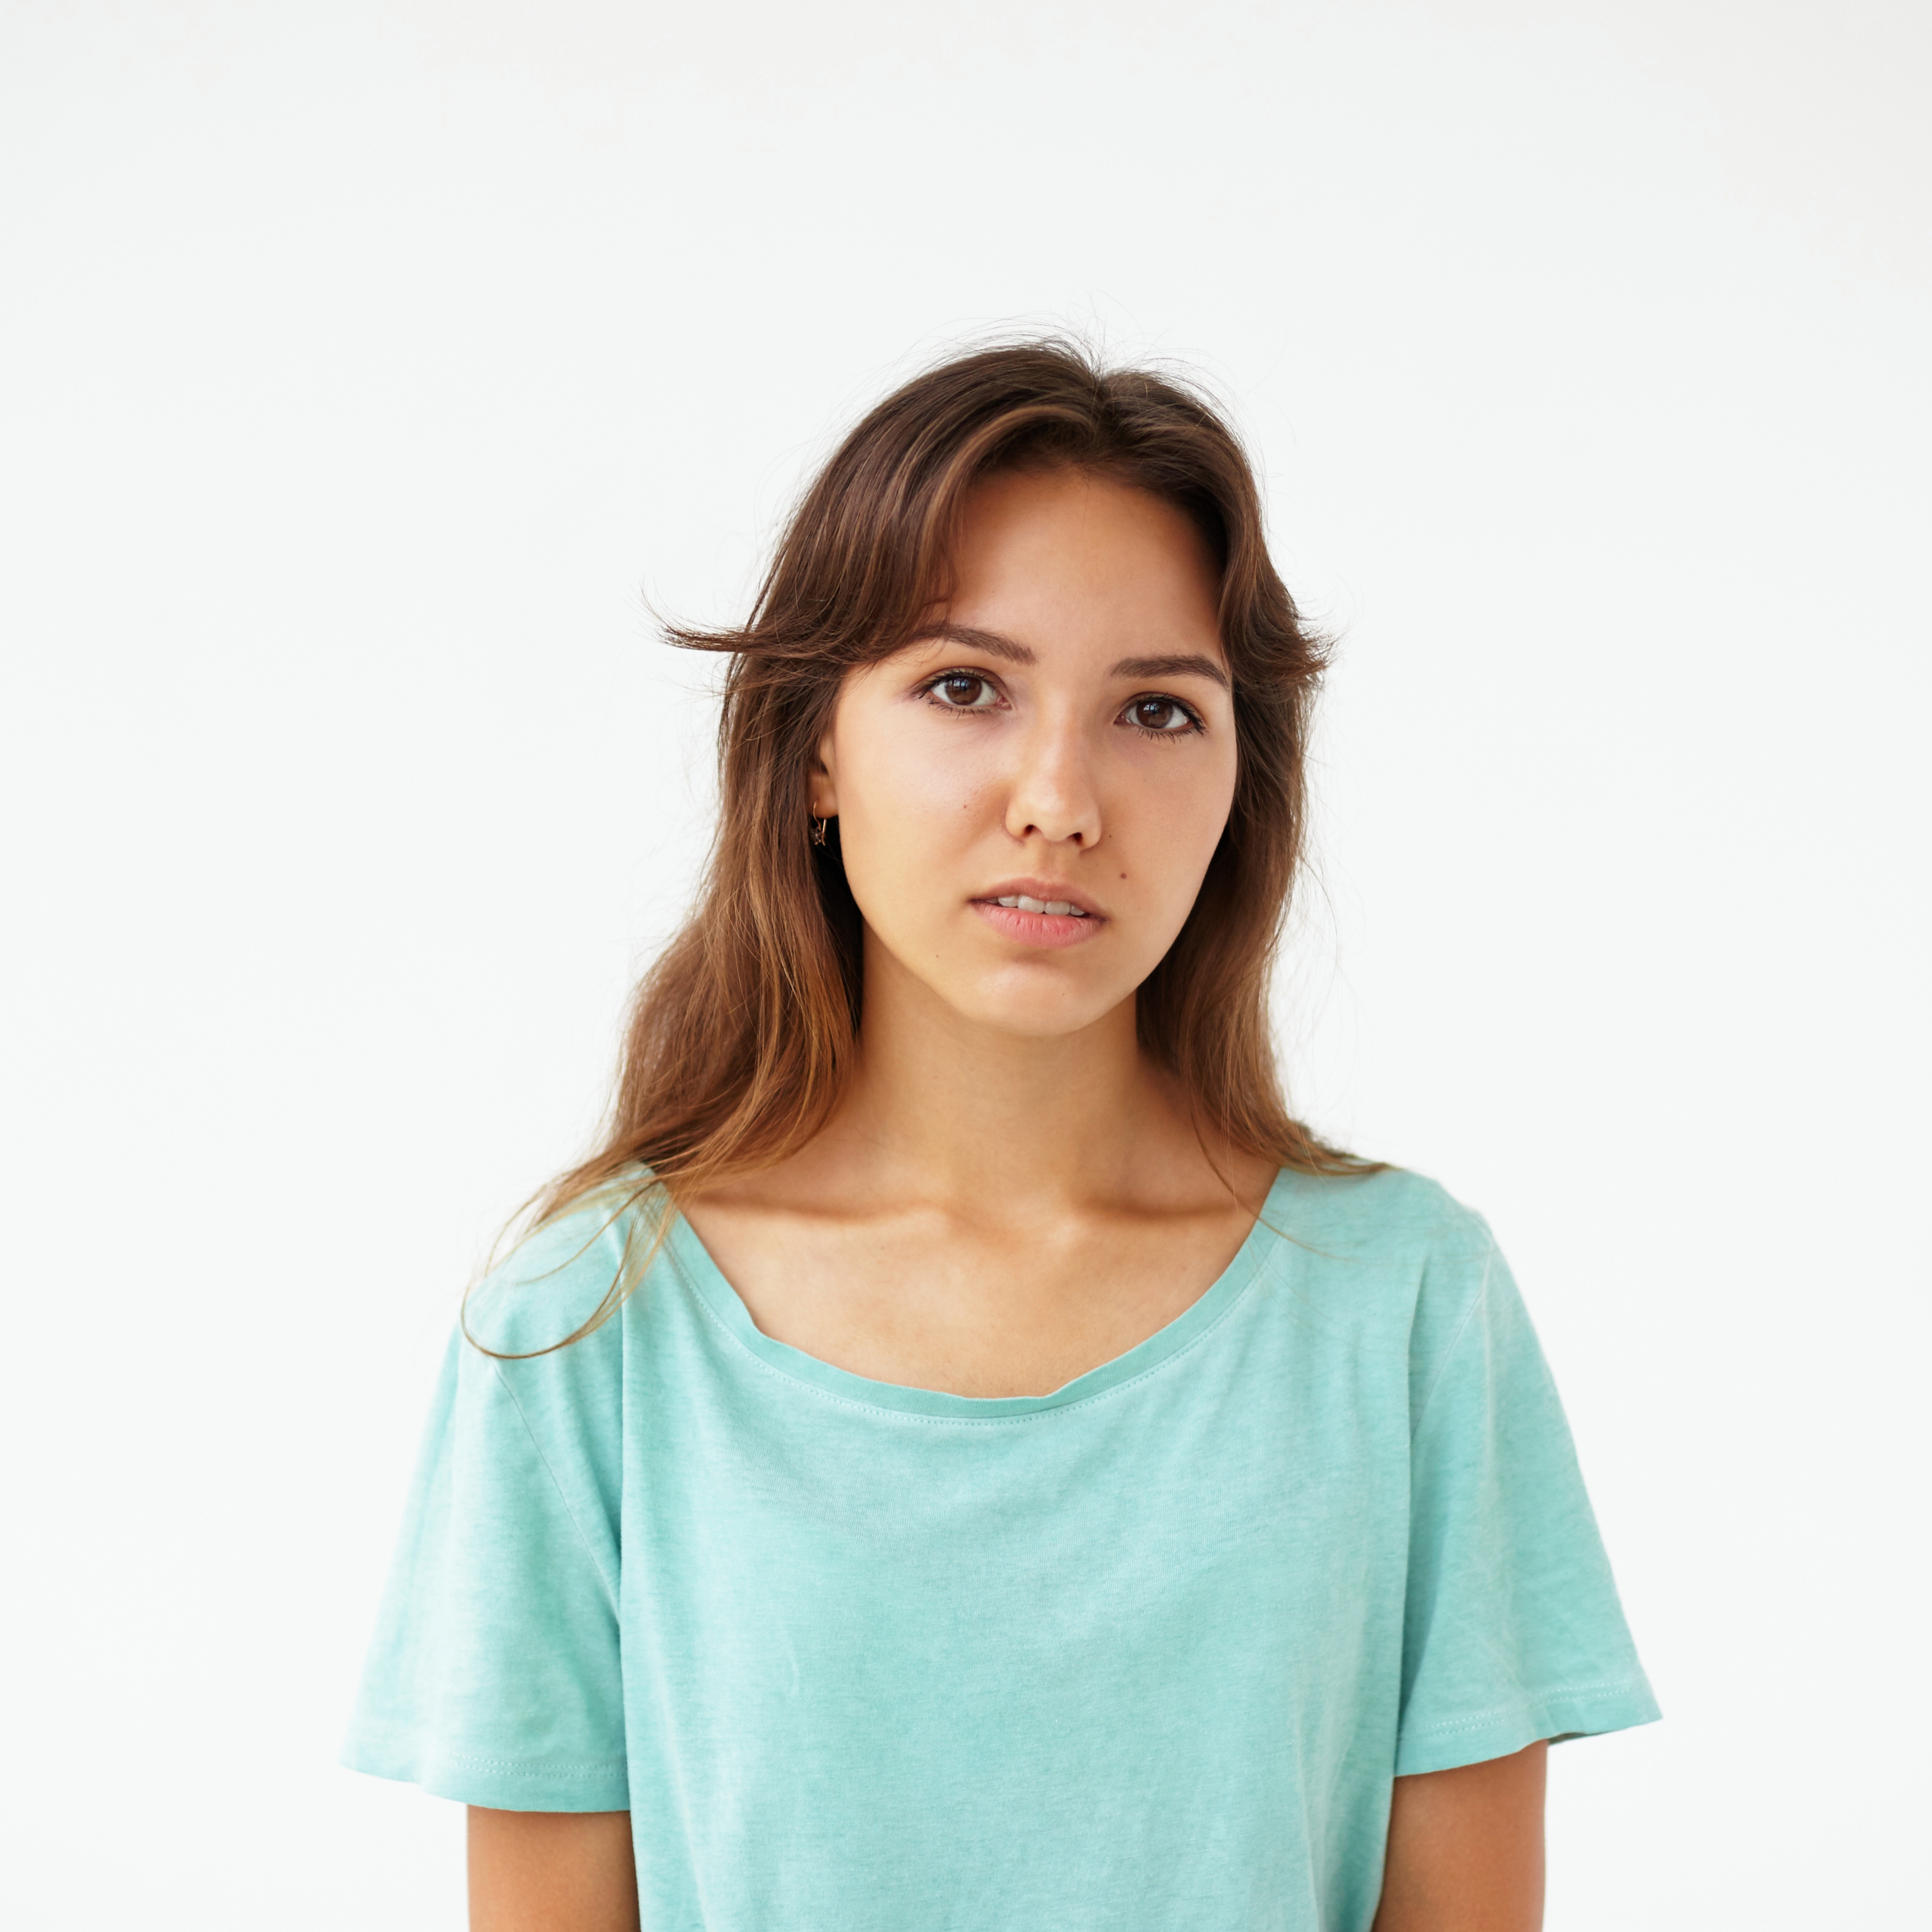 Portrait of teenage girl wearing oversize top looking at camera with serious or pensive expression on her face.